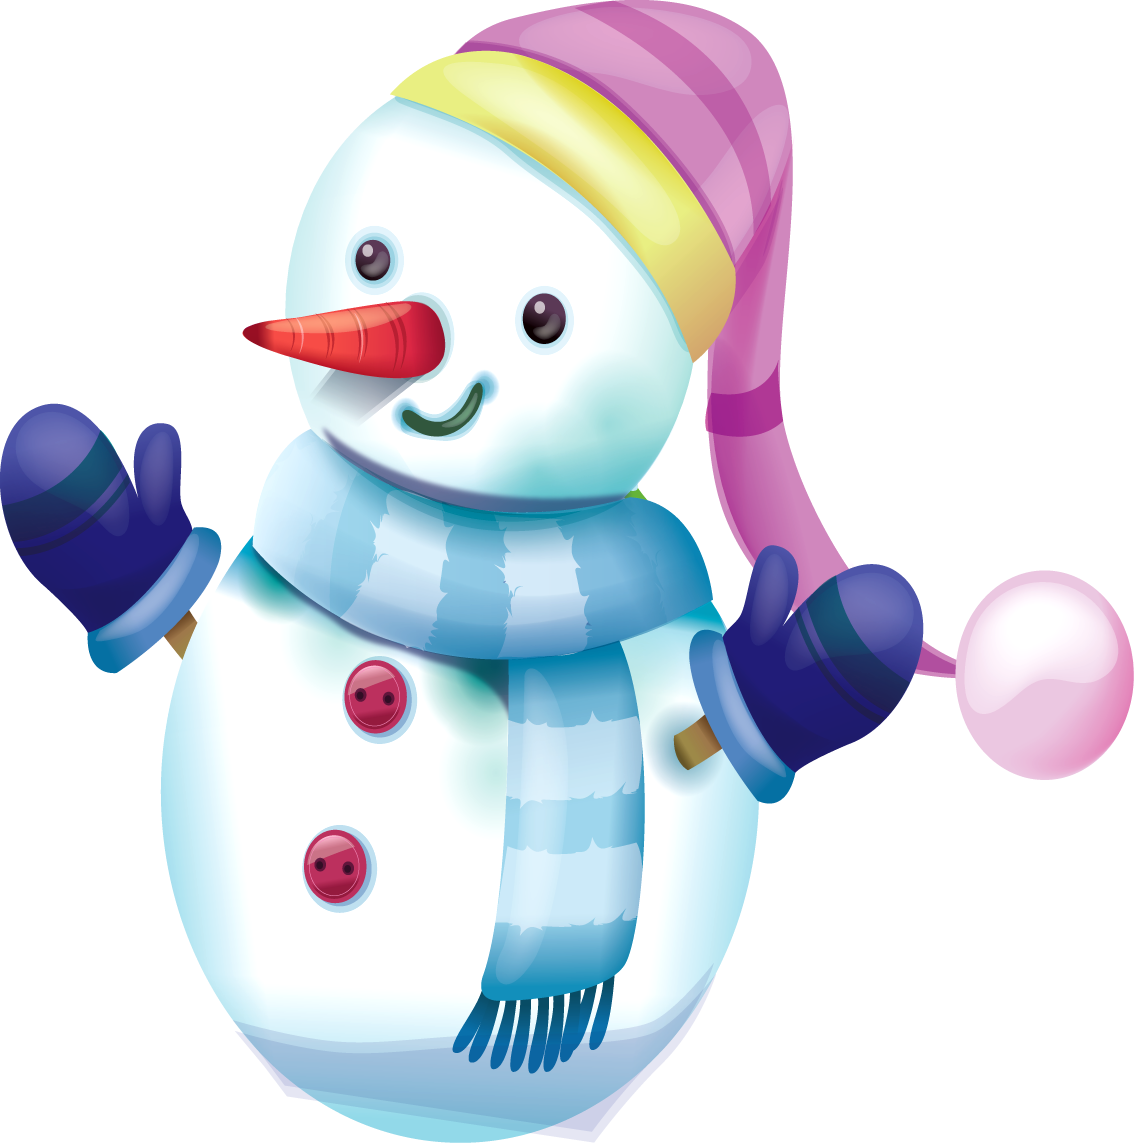 jpg royalty free download Snowman Clipart Transparent png images free